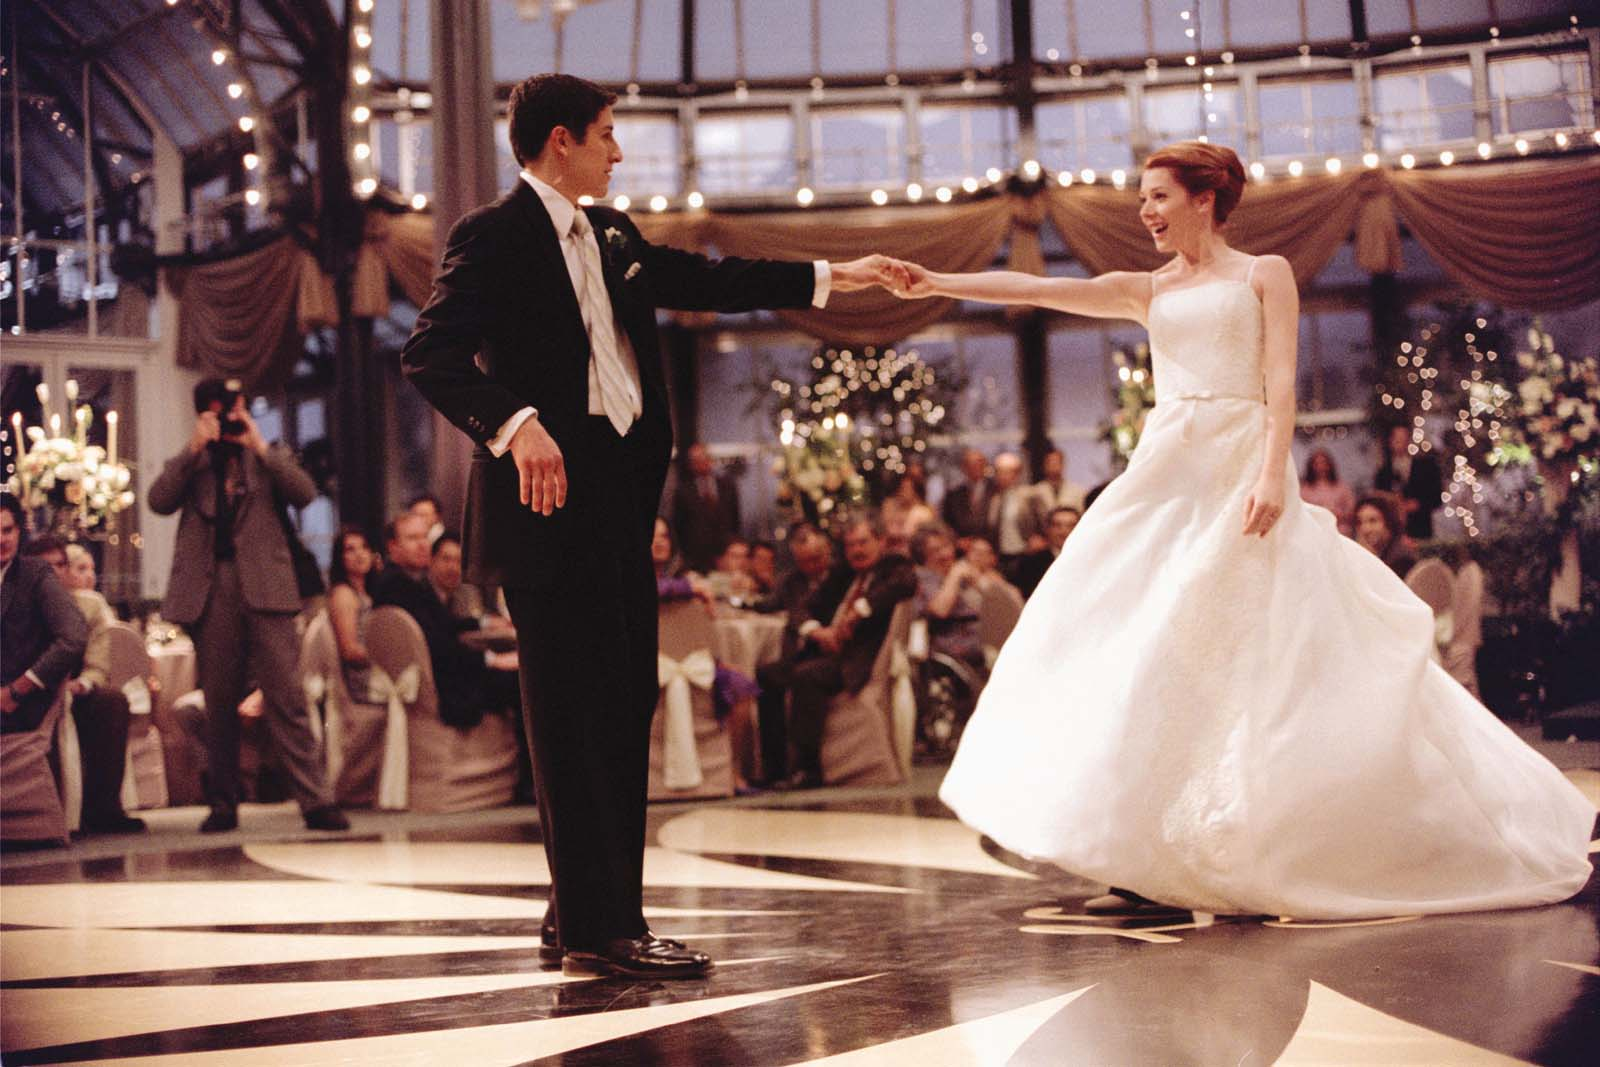 American Pie The Wedding Review